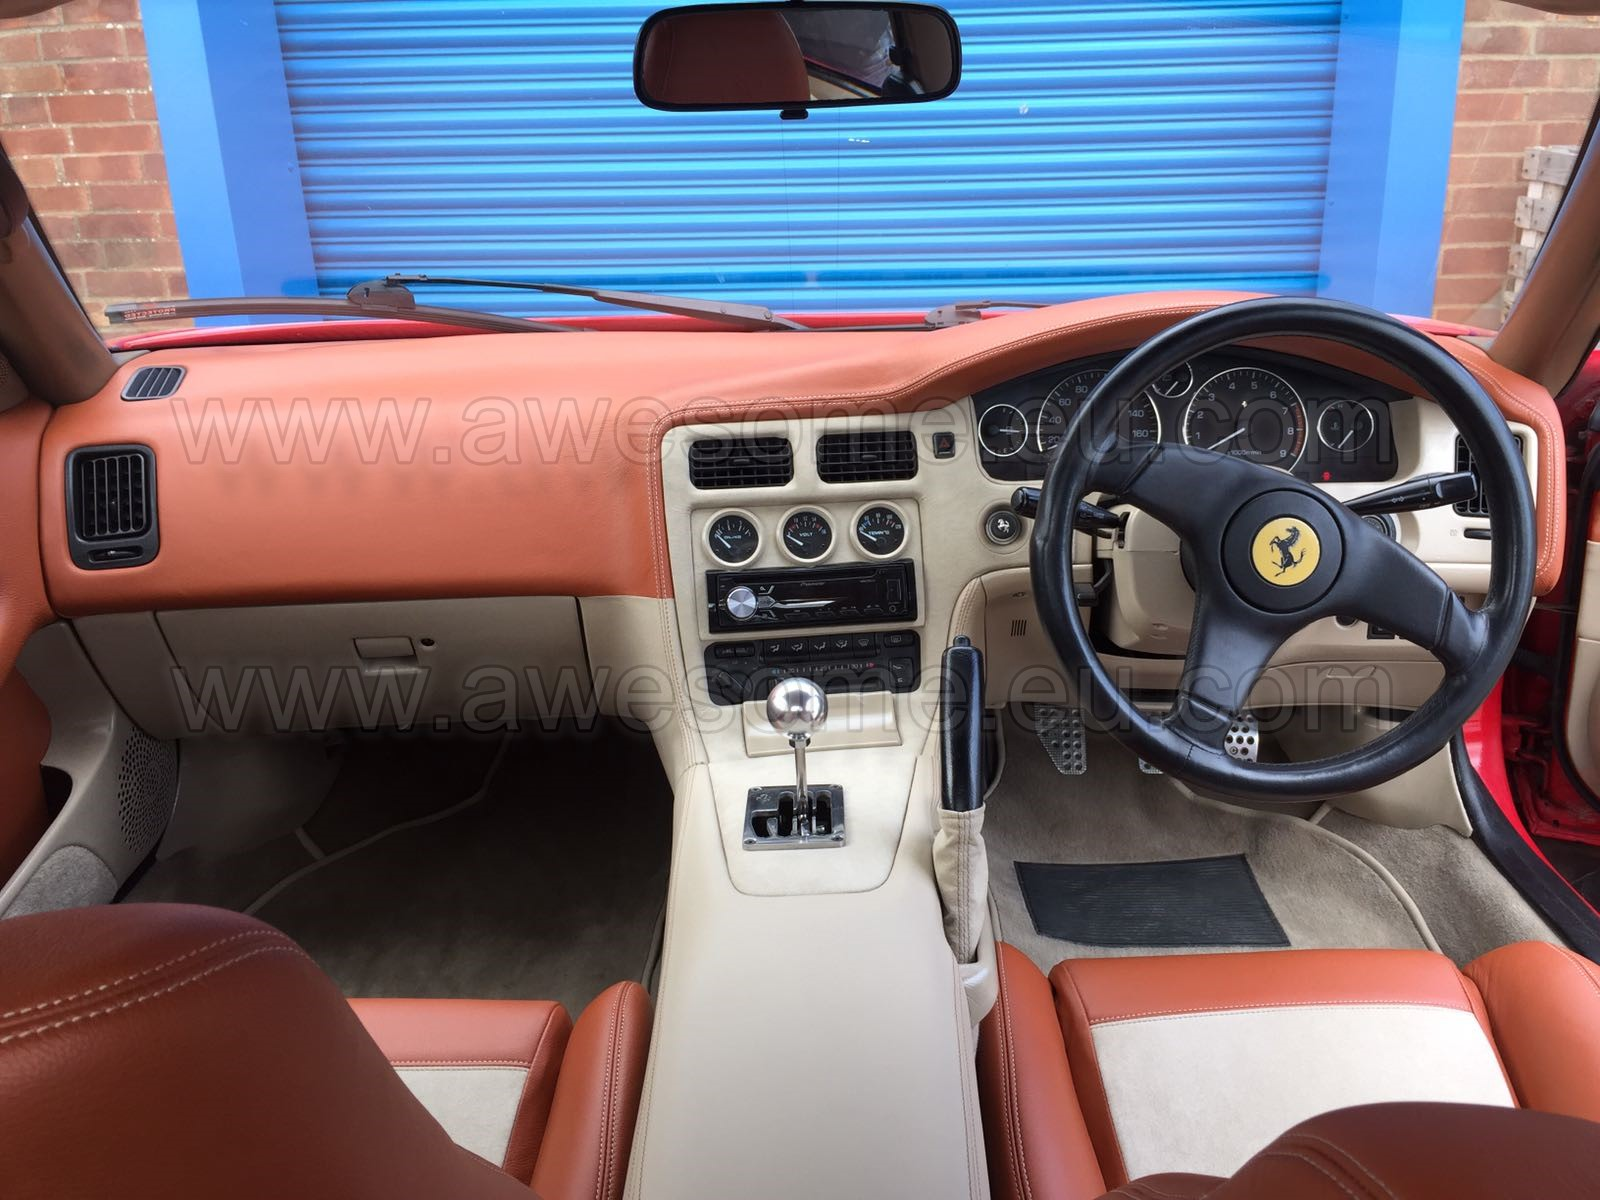 Ferrari F355 GTS - MR2 interior 7